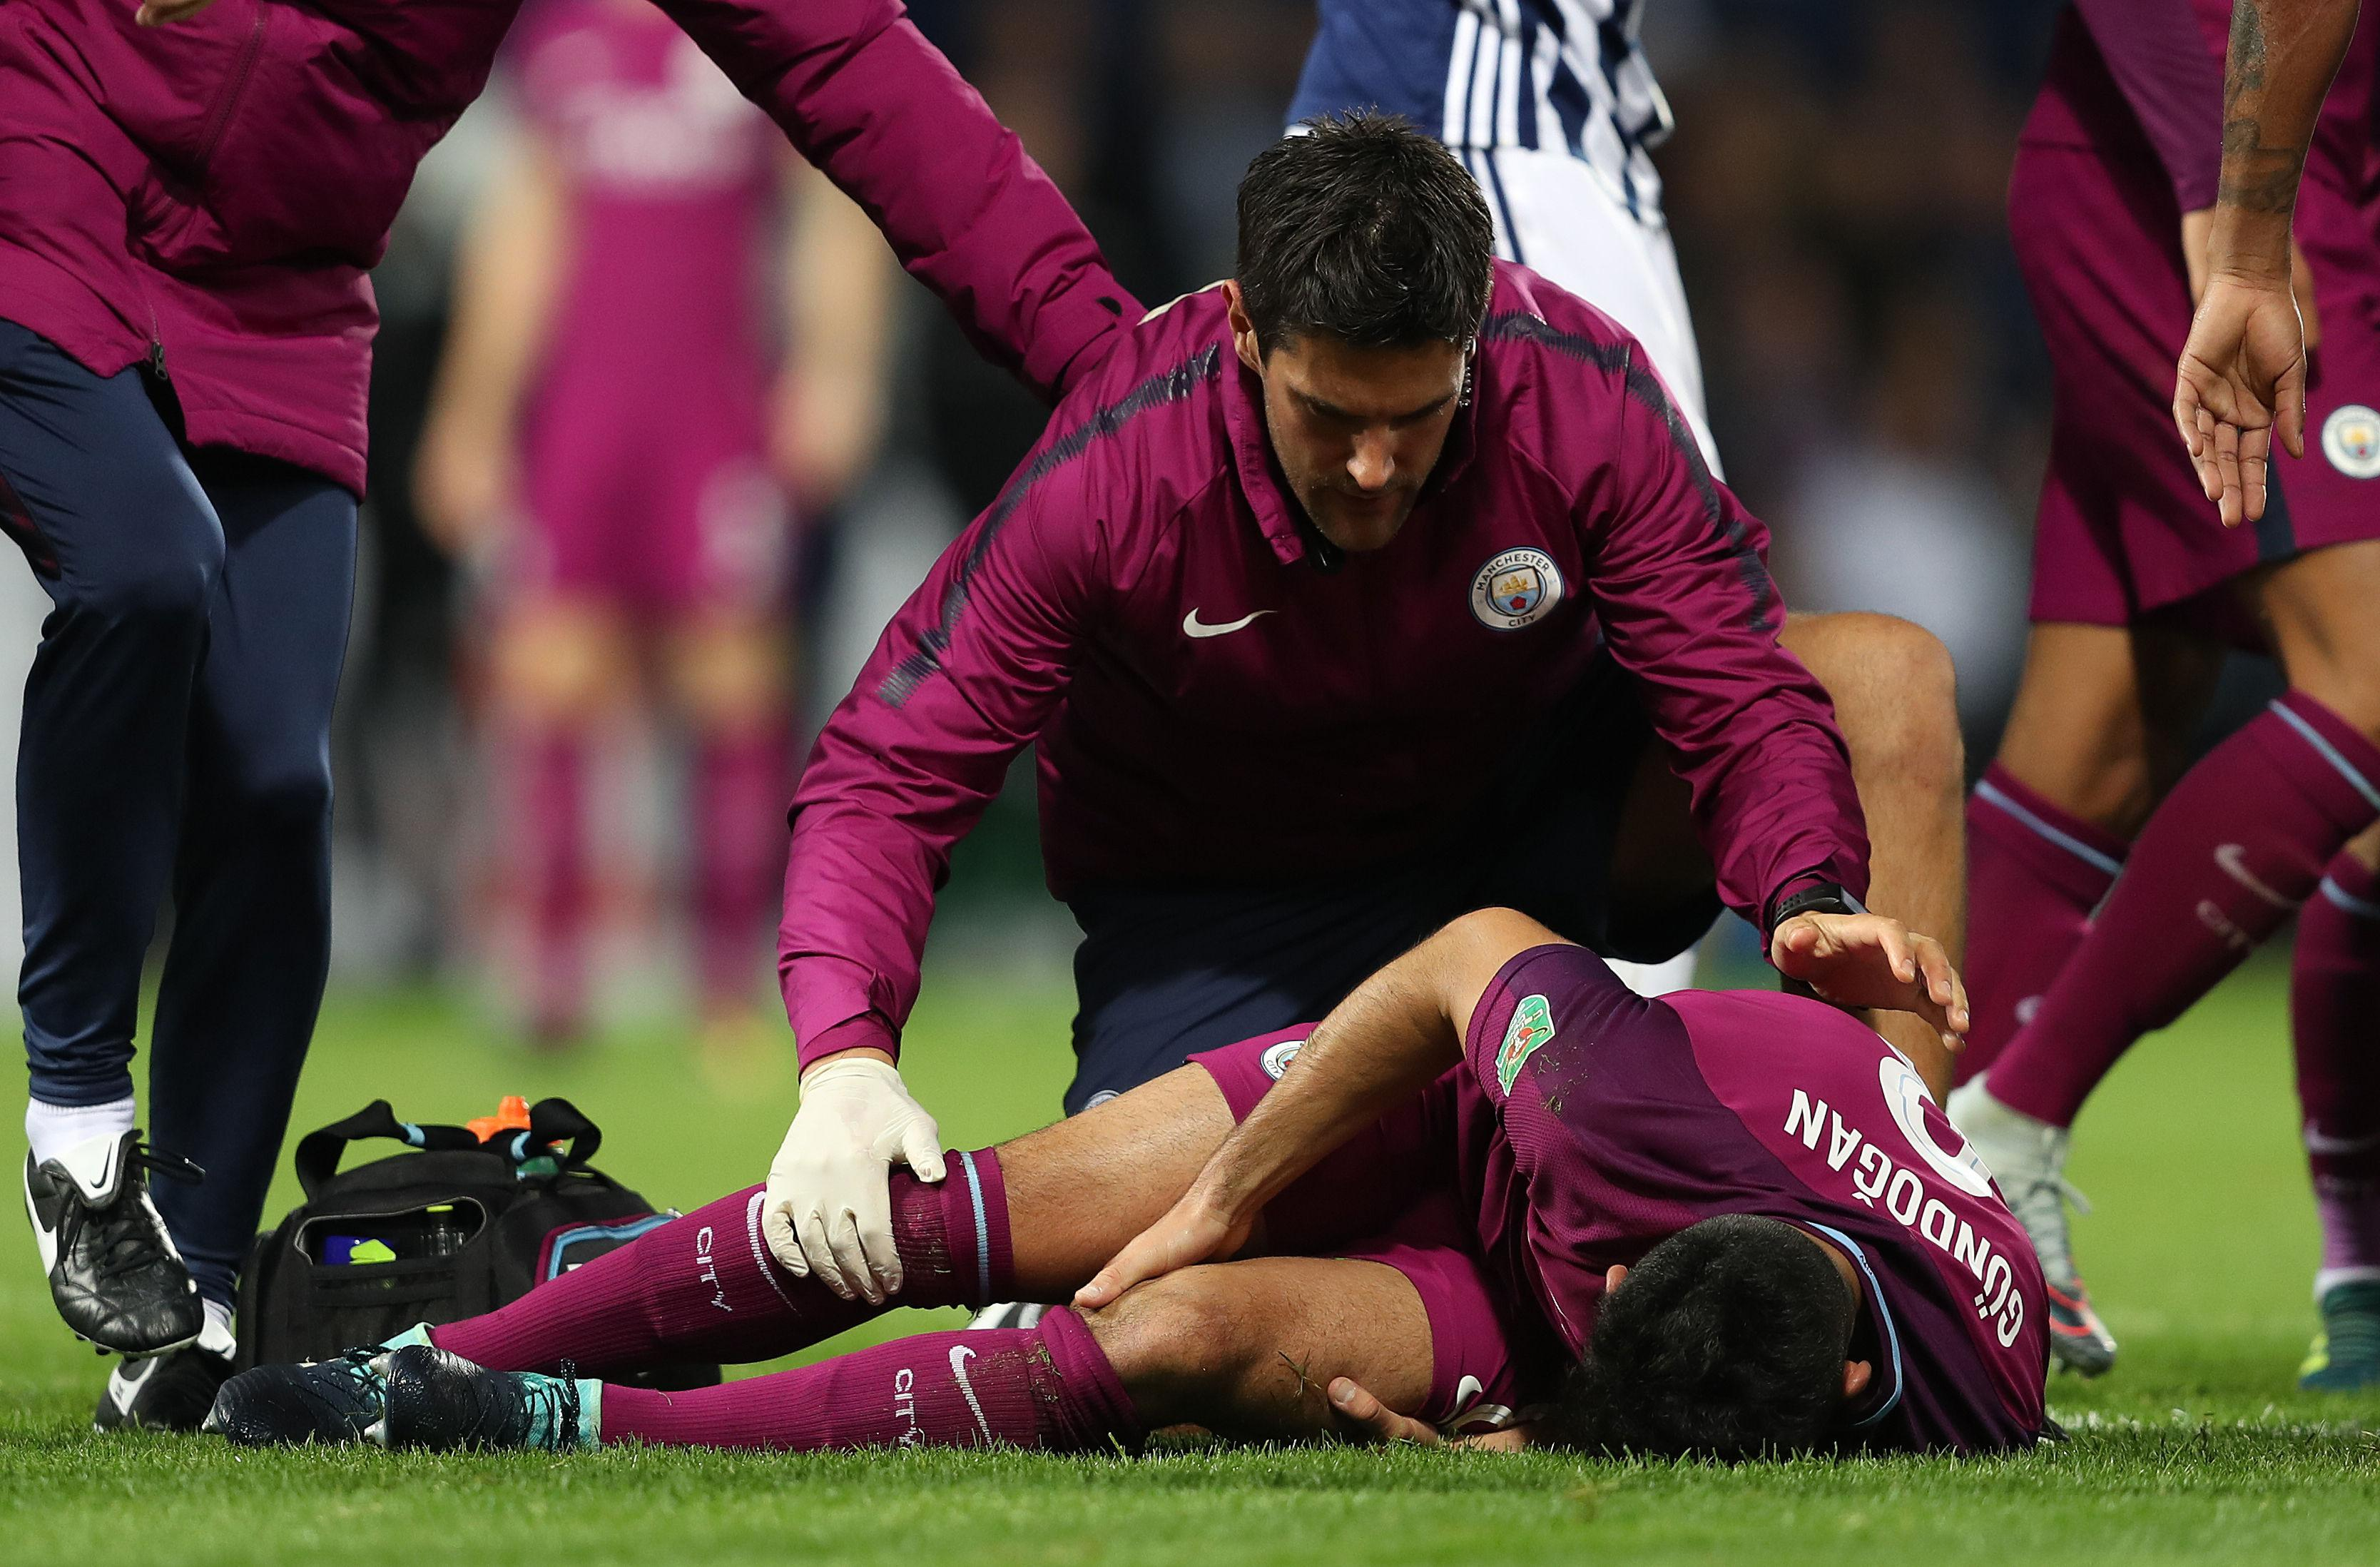 Gundogan's injury didn't look good